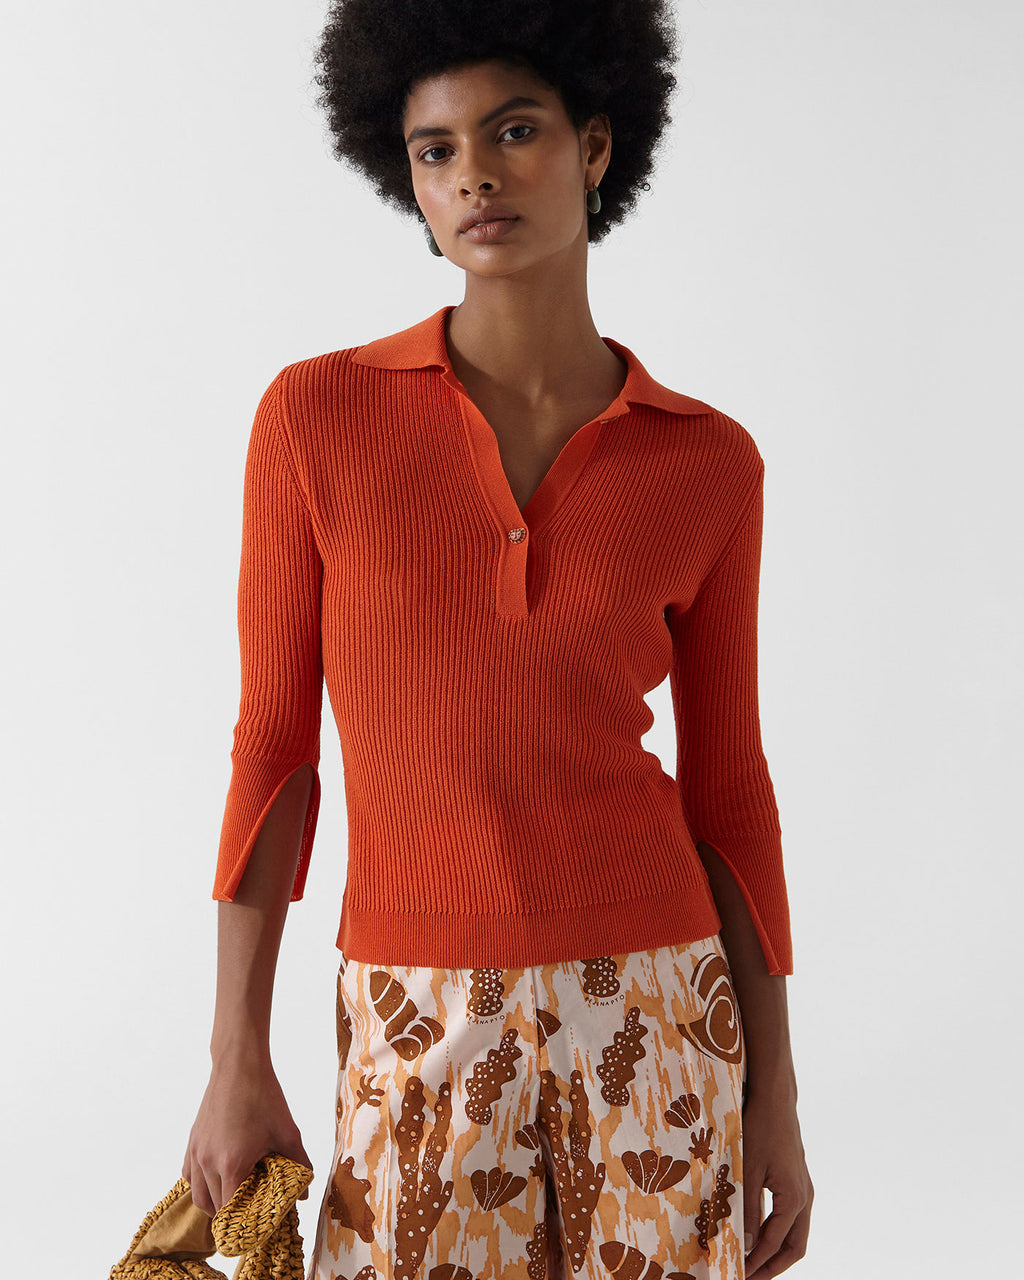 Andi Knit Cotton Blend Orange